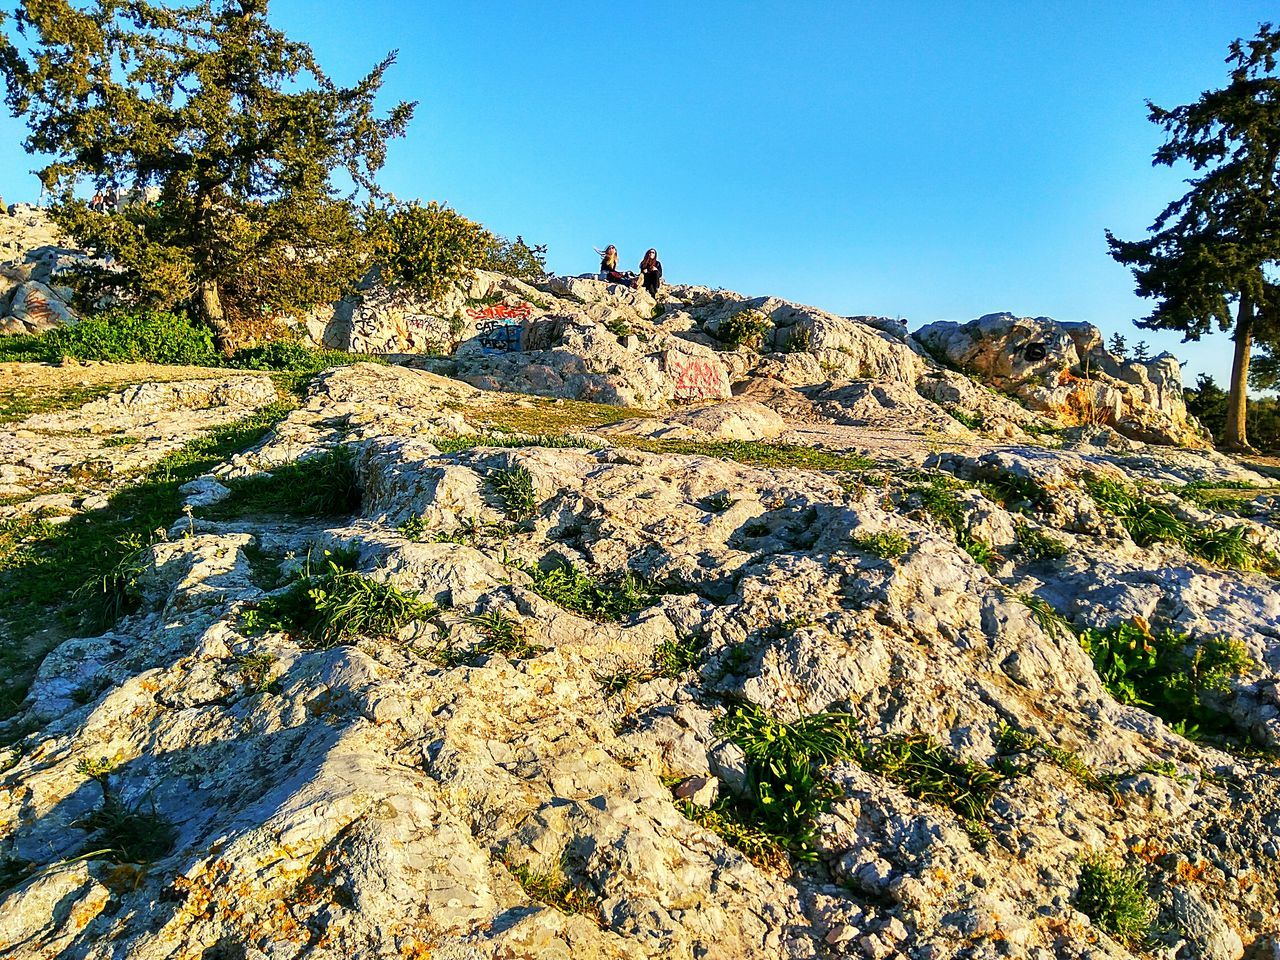 Growth Nature Sunlight Tree Outdoors Day Beauty In Nature Sky EyeEm Nature Lover Acropolis Athens Greece Horizon People Of EyeEm Clear Sky Rocks Leisure Activity Enjoying The Sun Enjoying Nature Enjoying The View Hills Low Angle View